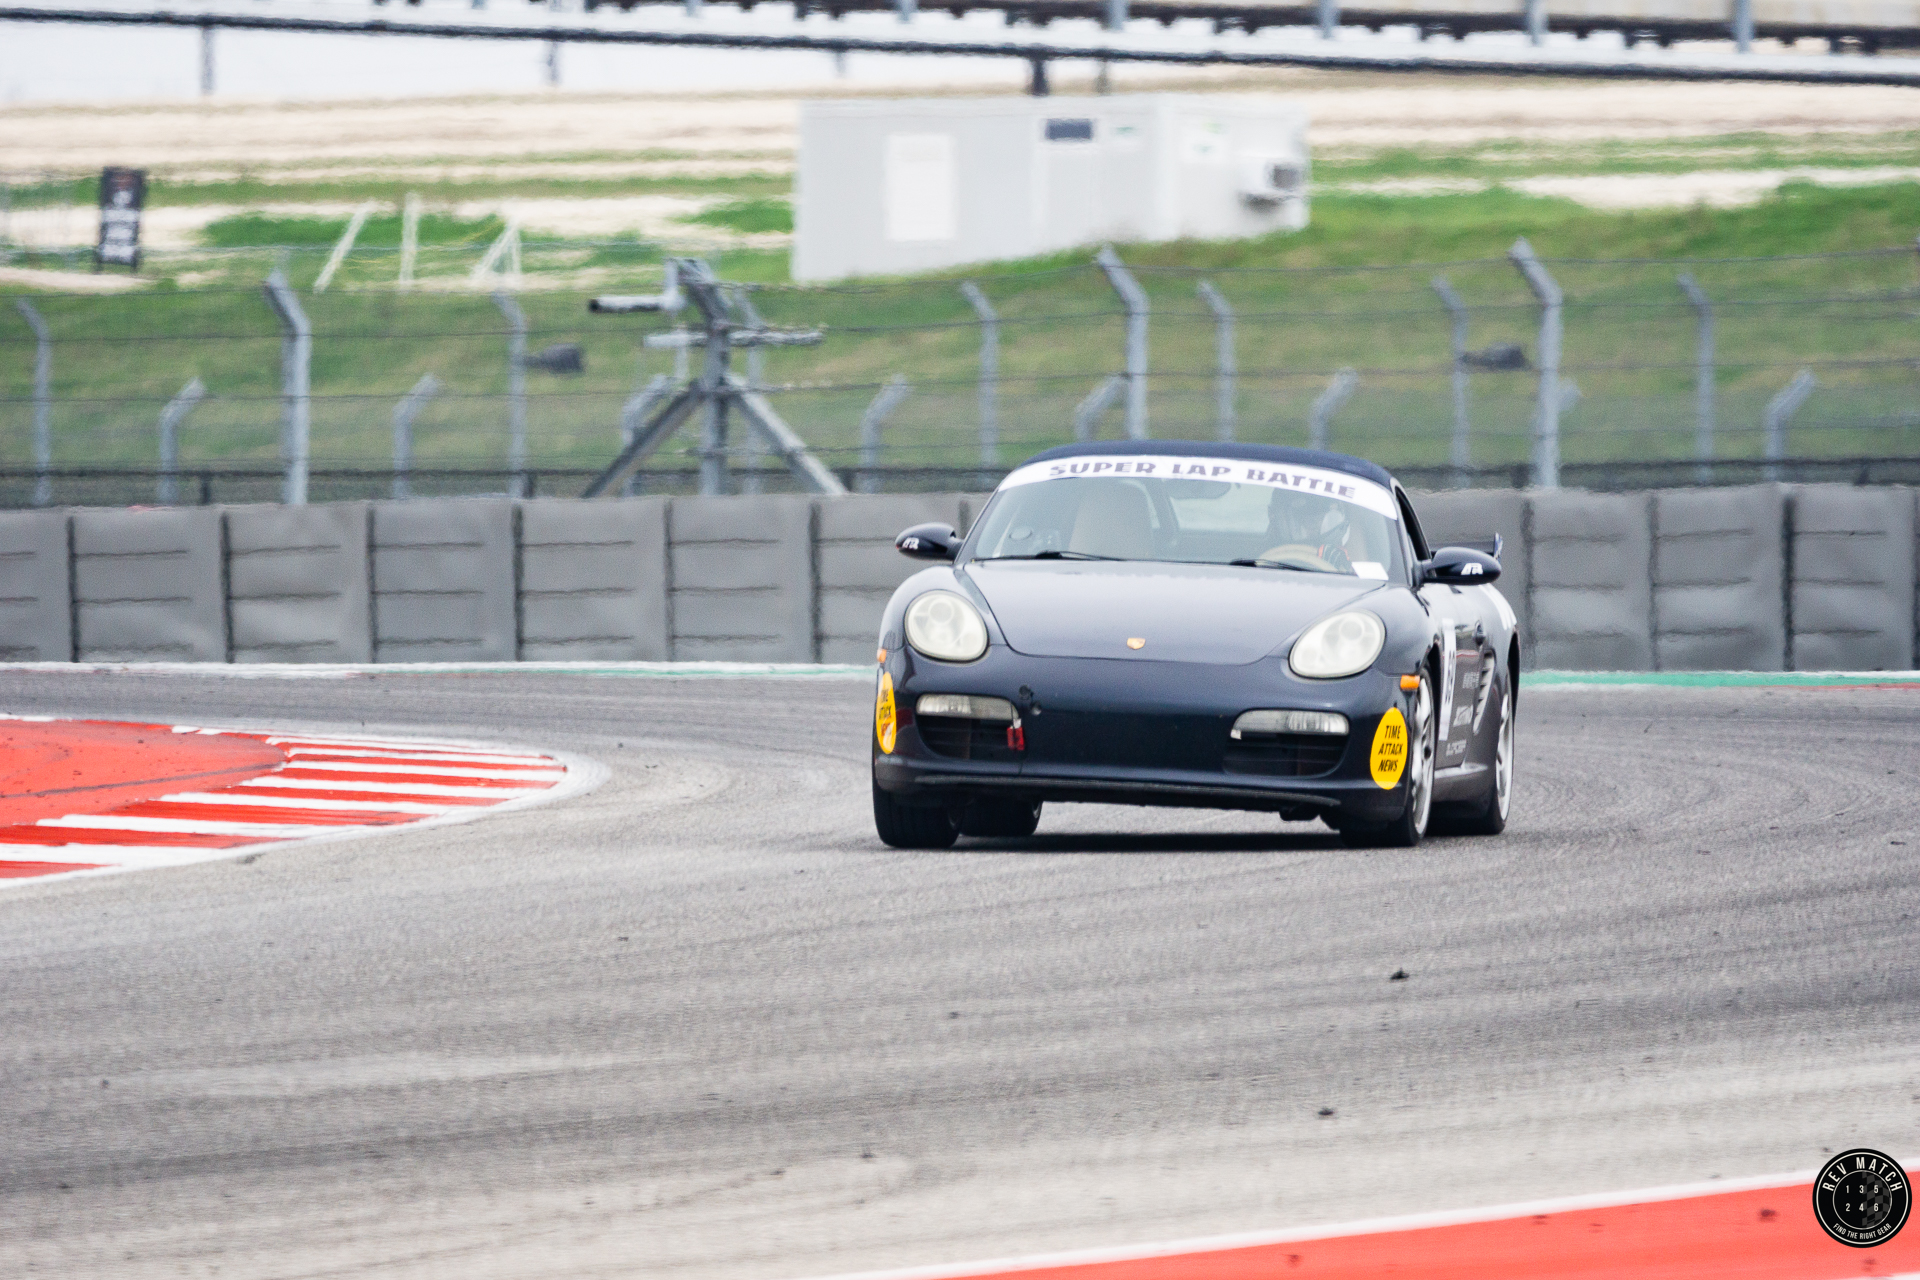 Super Lap Battle COTA Rev Match Media-204.jpg